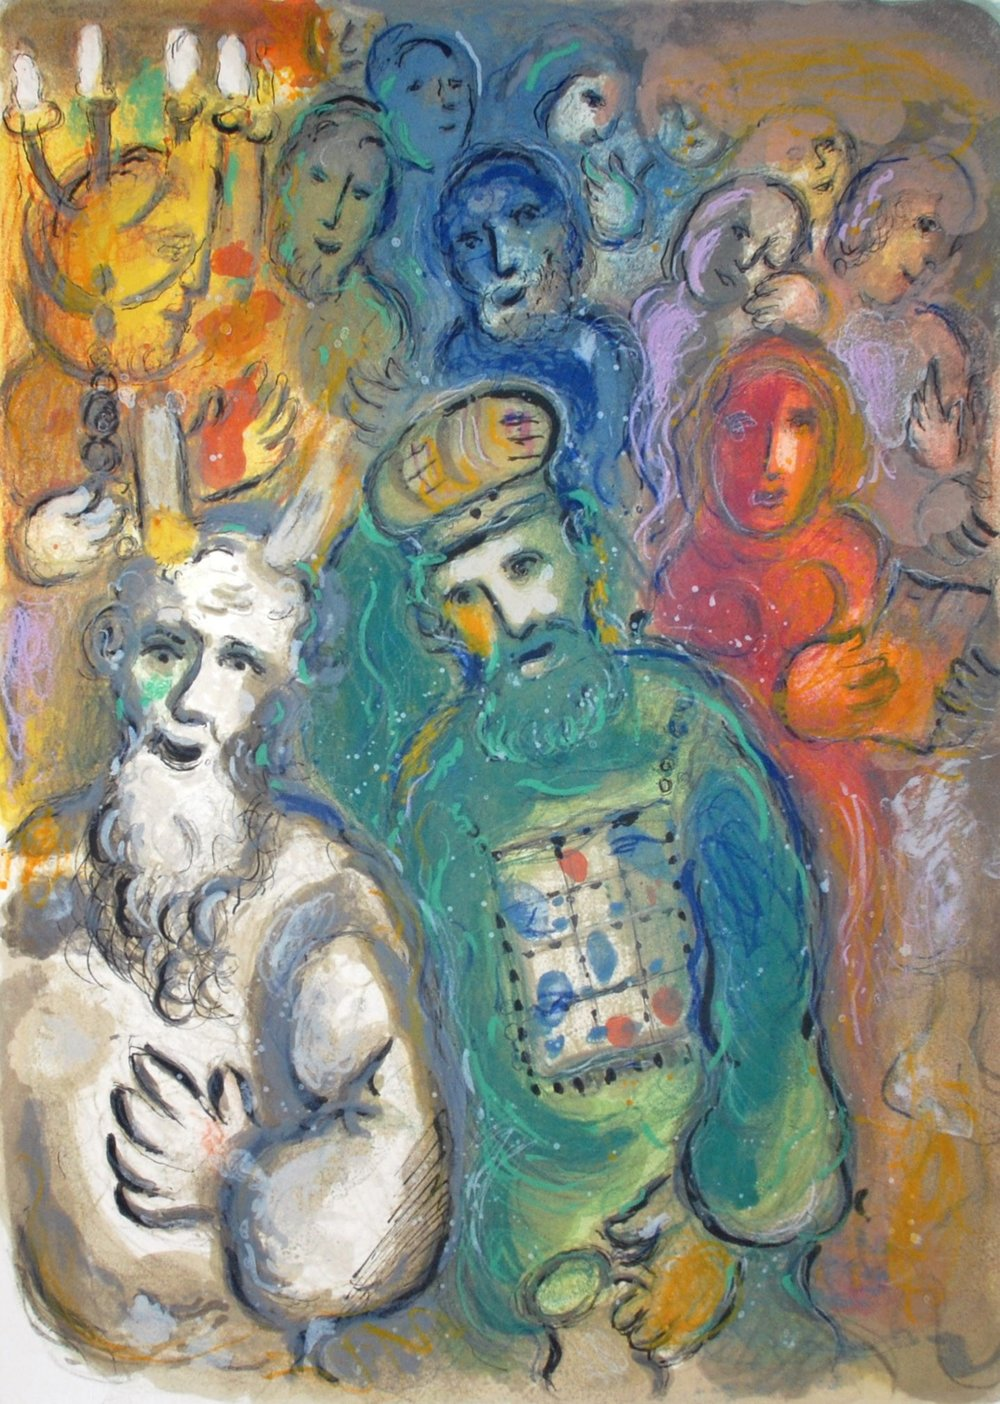 Moses and Aaron and the Elders, by Marc Chagall